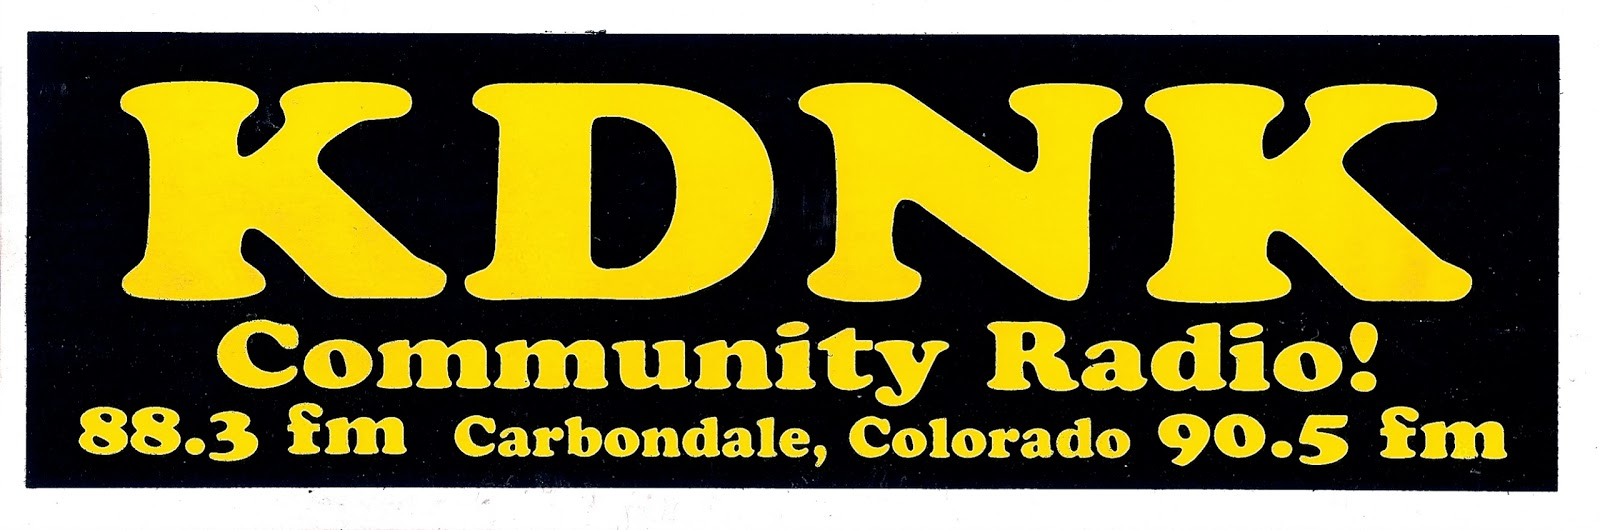 Radio Sticker of the Day: October 2013